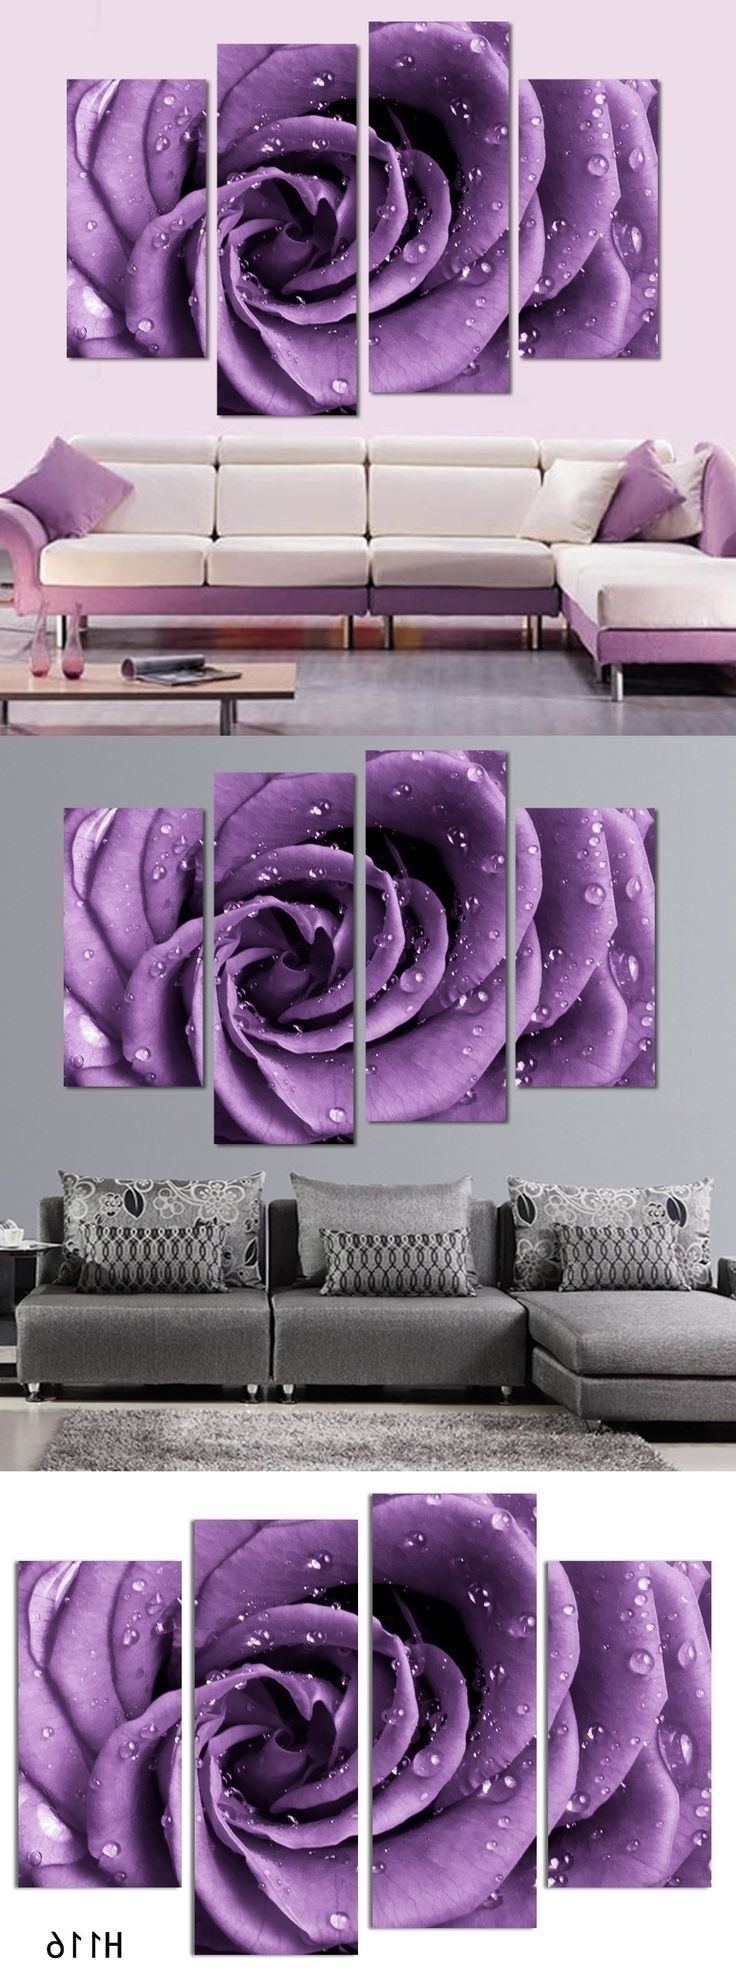 3 Piece Wall Art White Purple Lover Flower Big Perfect Canvas Wall With Regard To Most Current Purple Canvas Wall Art (View 11 of 15)